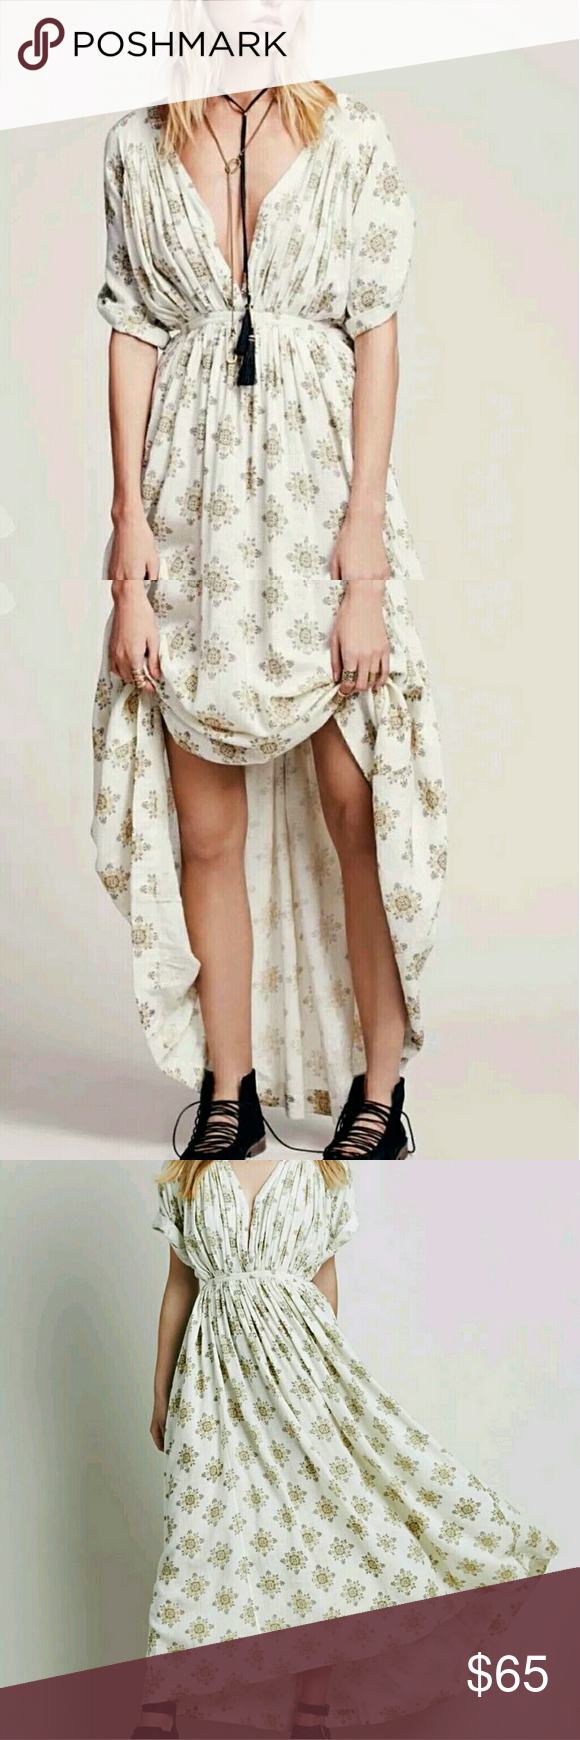 Free People Oasis Maxi Dress Beautiful ivory maxi with gold print, side ties adjust the waist, cuffed sleeves. Very flowy summer dress.  This is a 6 but because of how flowy it is and adjustable sides will fit up to L/XL. Free People Dresses Maxi